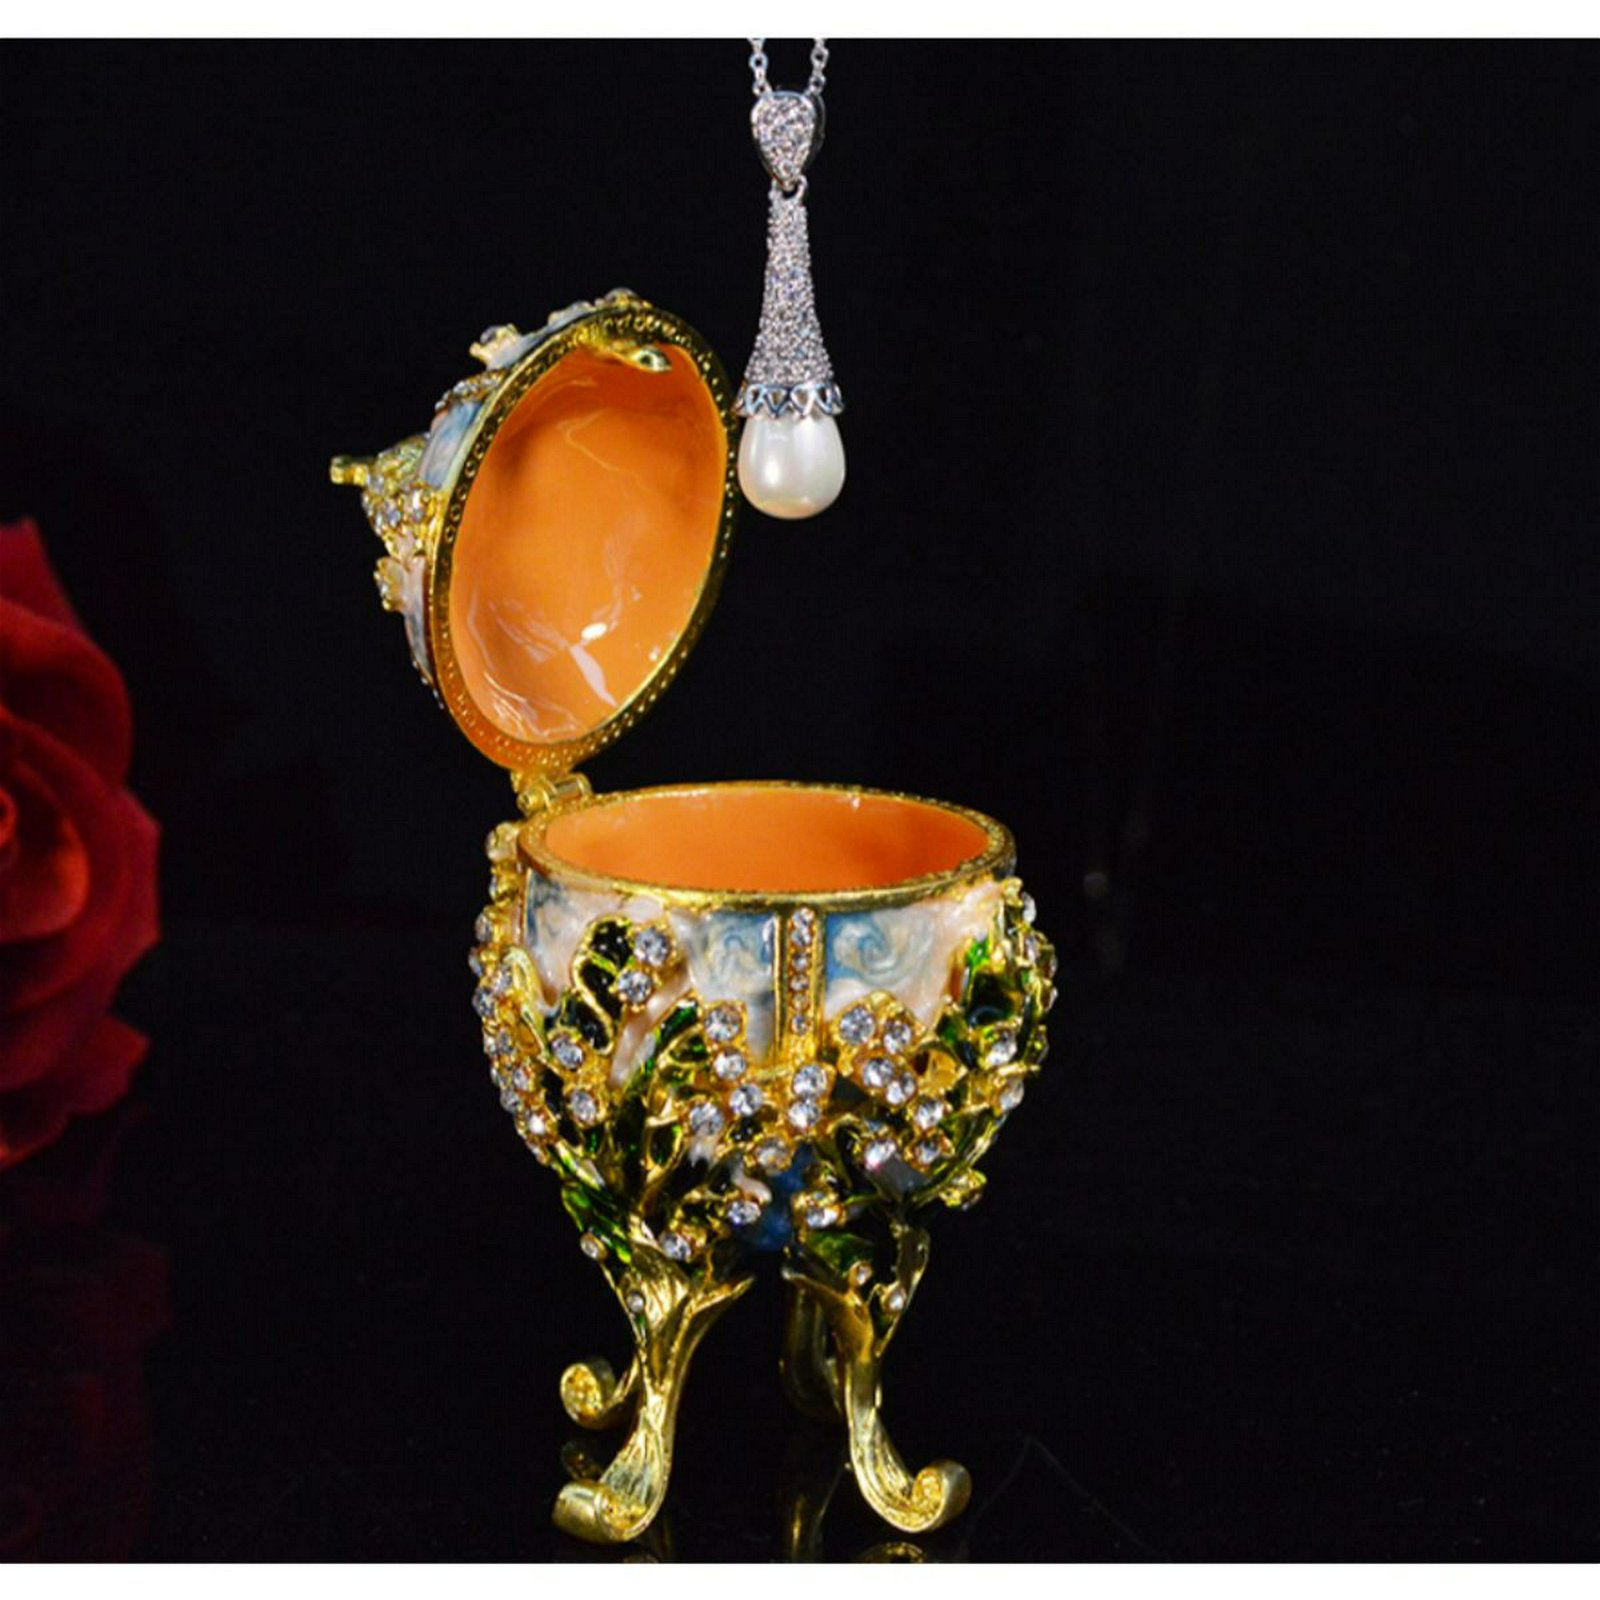 Pearl Metal Religious Mascot Collection Faberge Egg